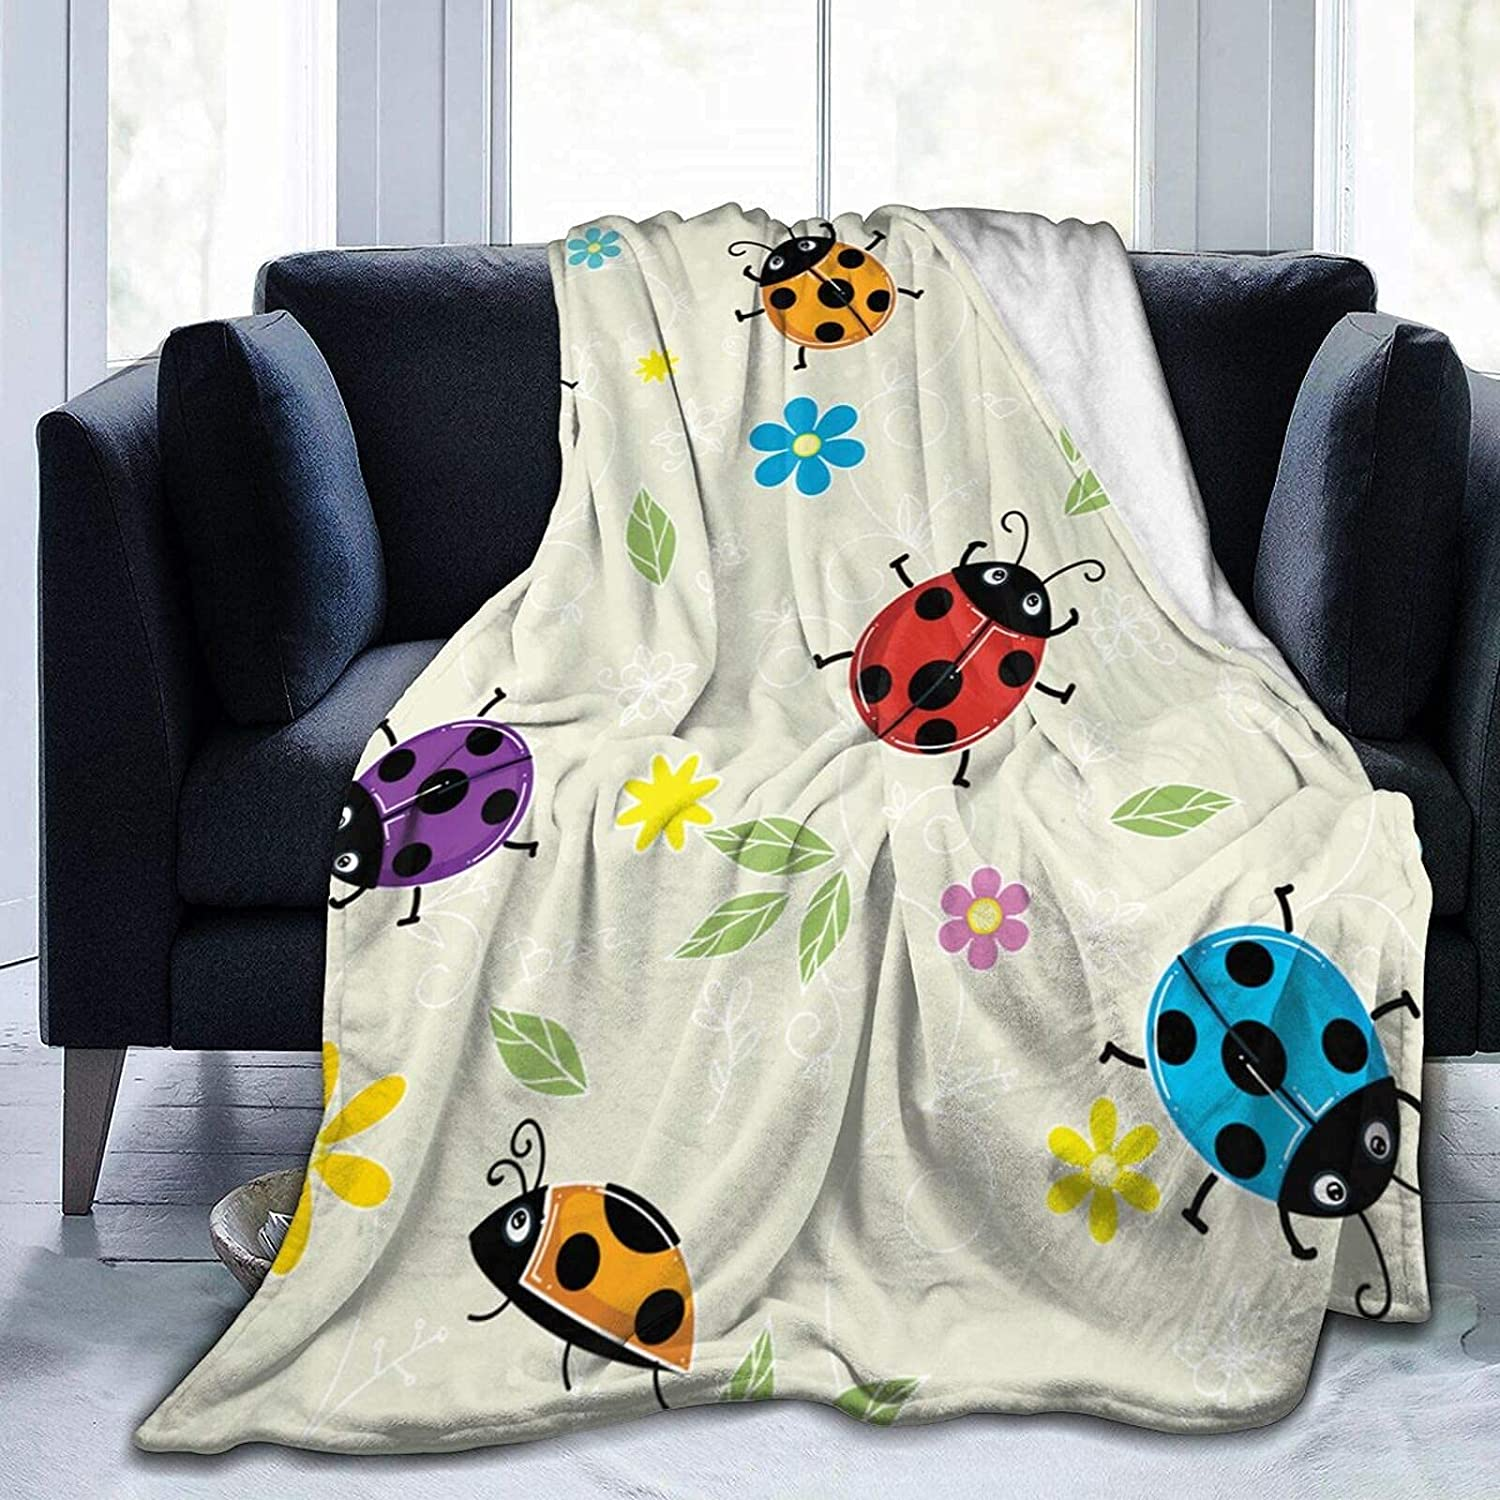 Blanket Ladybugs Cute Floral Soldering Fleece Flannel C Throw Max 54% OFF Blankets for